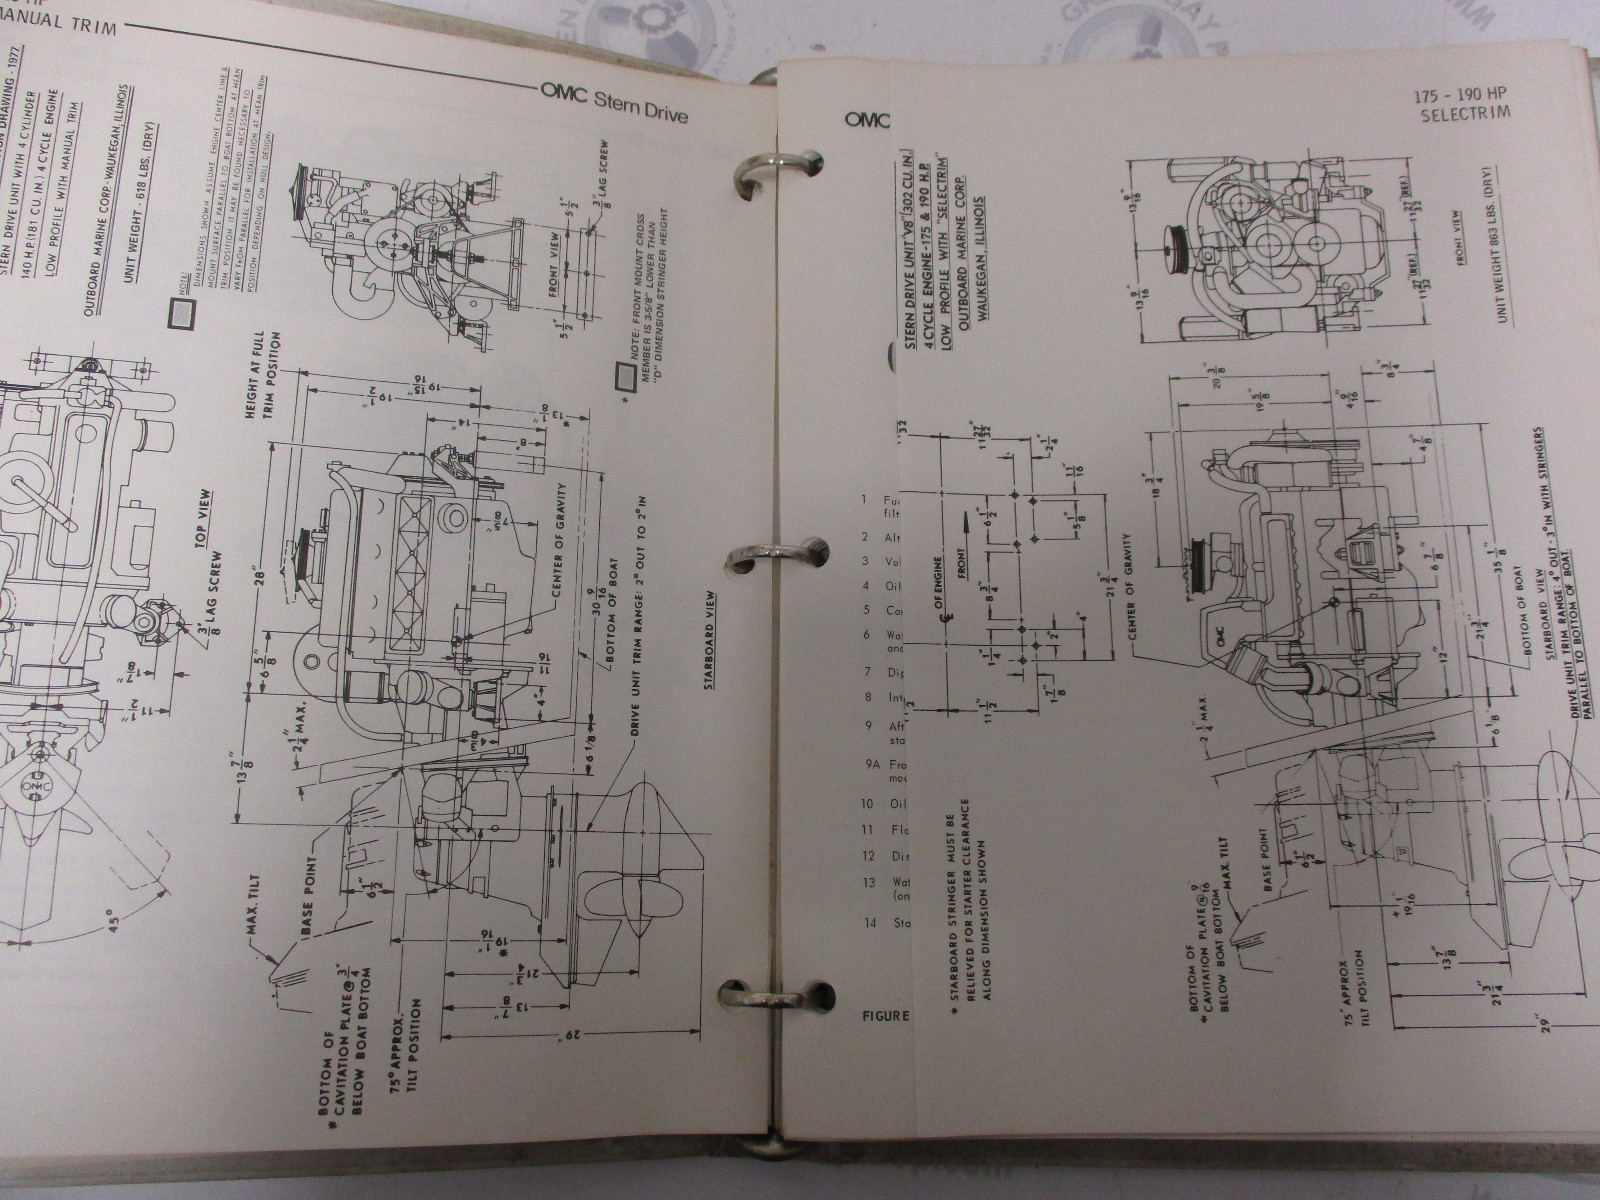 hight resolution of  981046 omc stern drive 1976 service installation manual